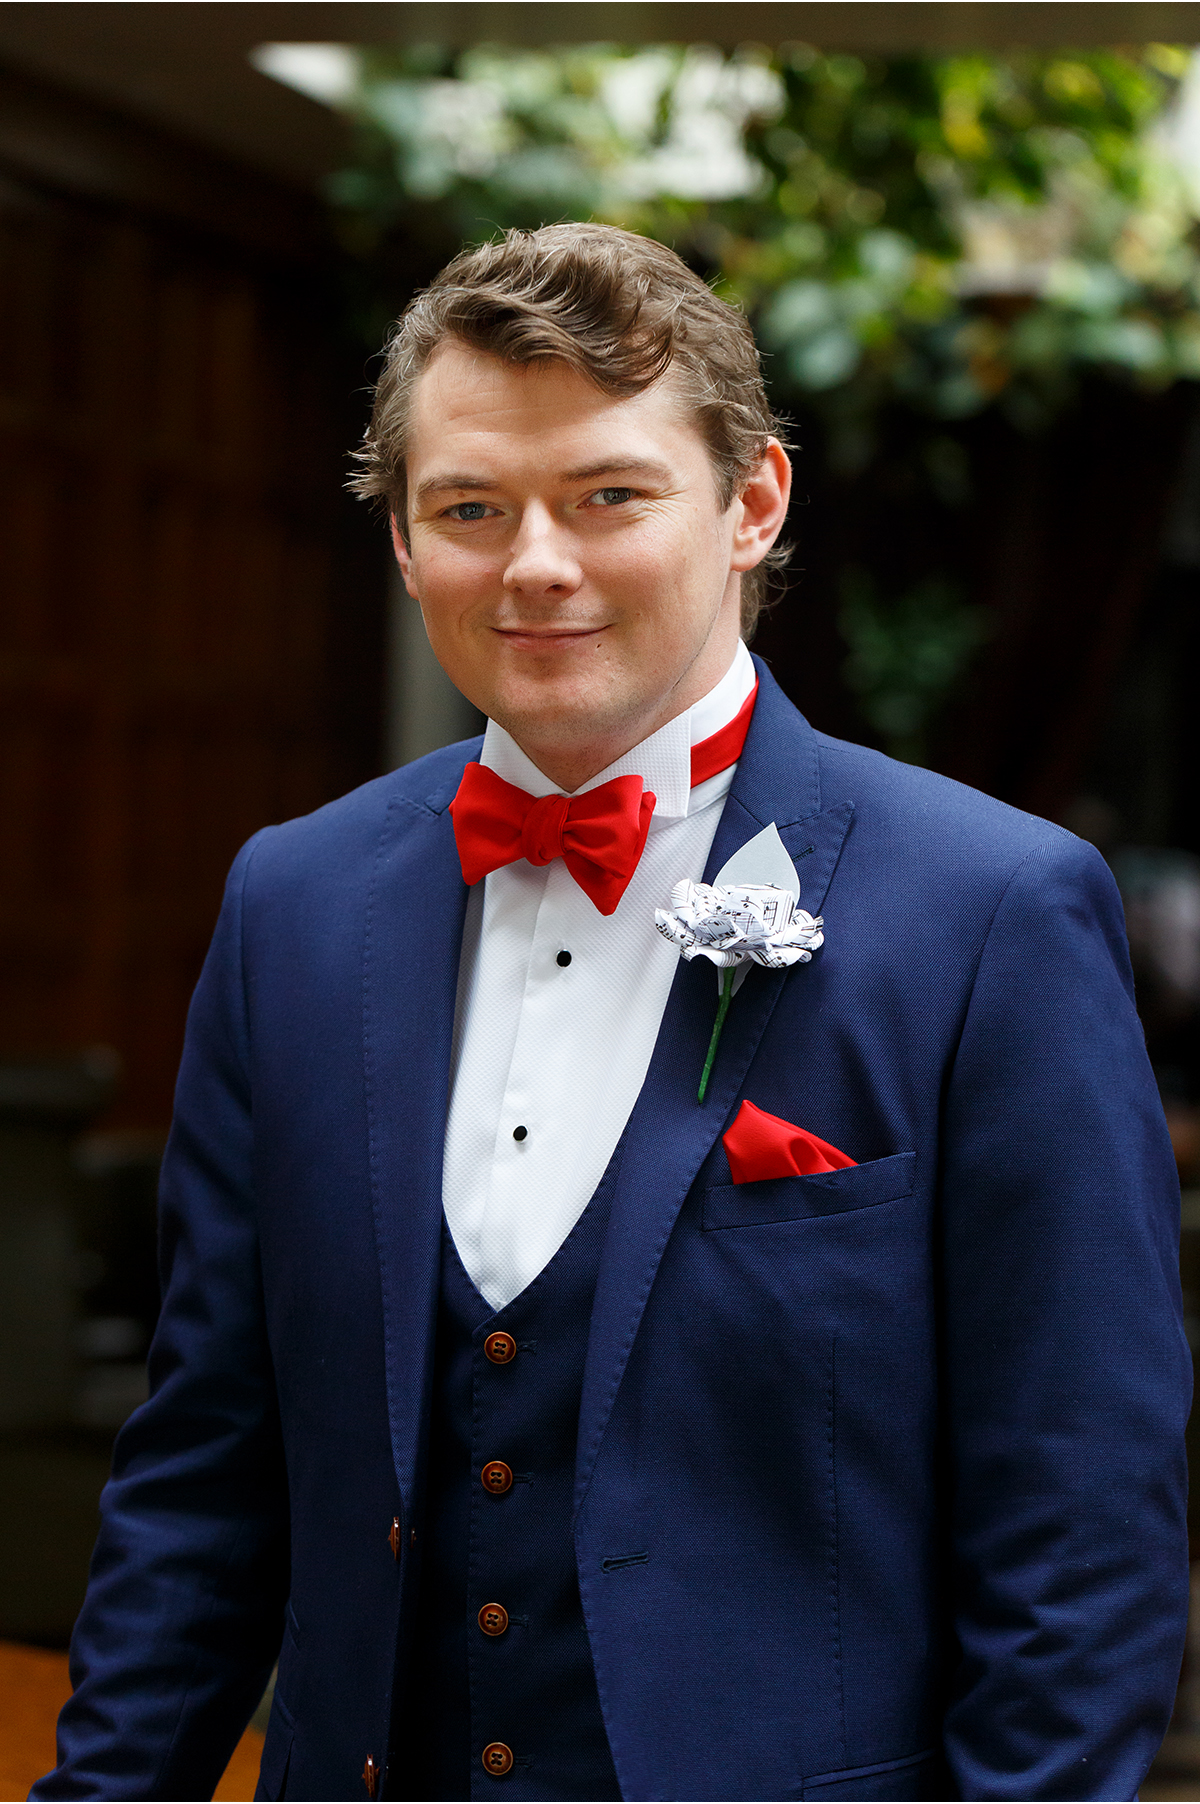 groom - red bowtie navy suit